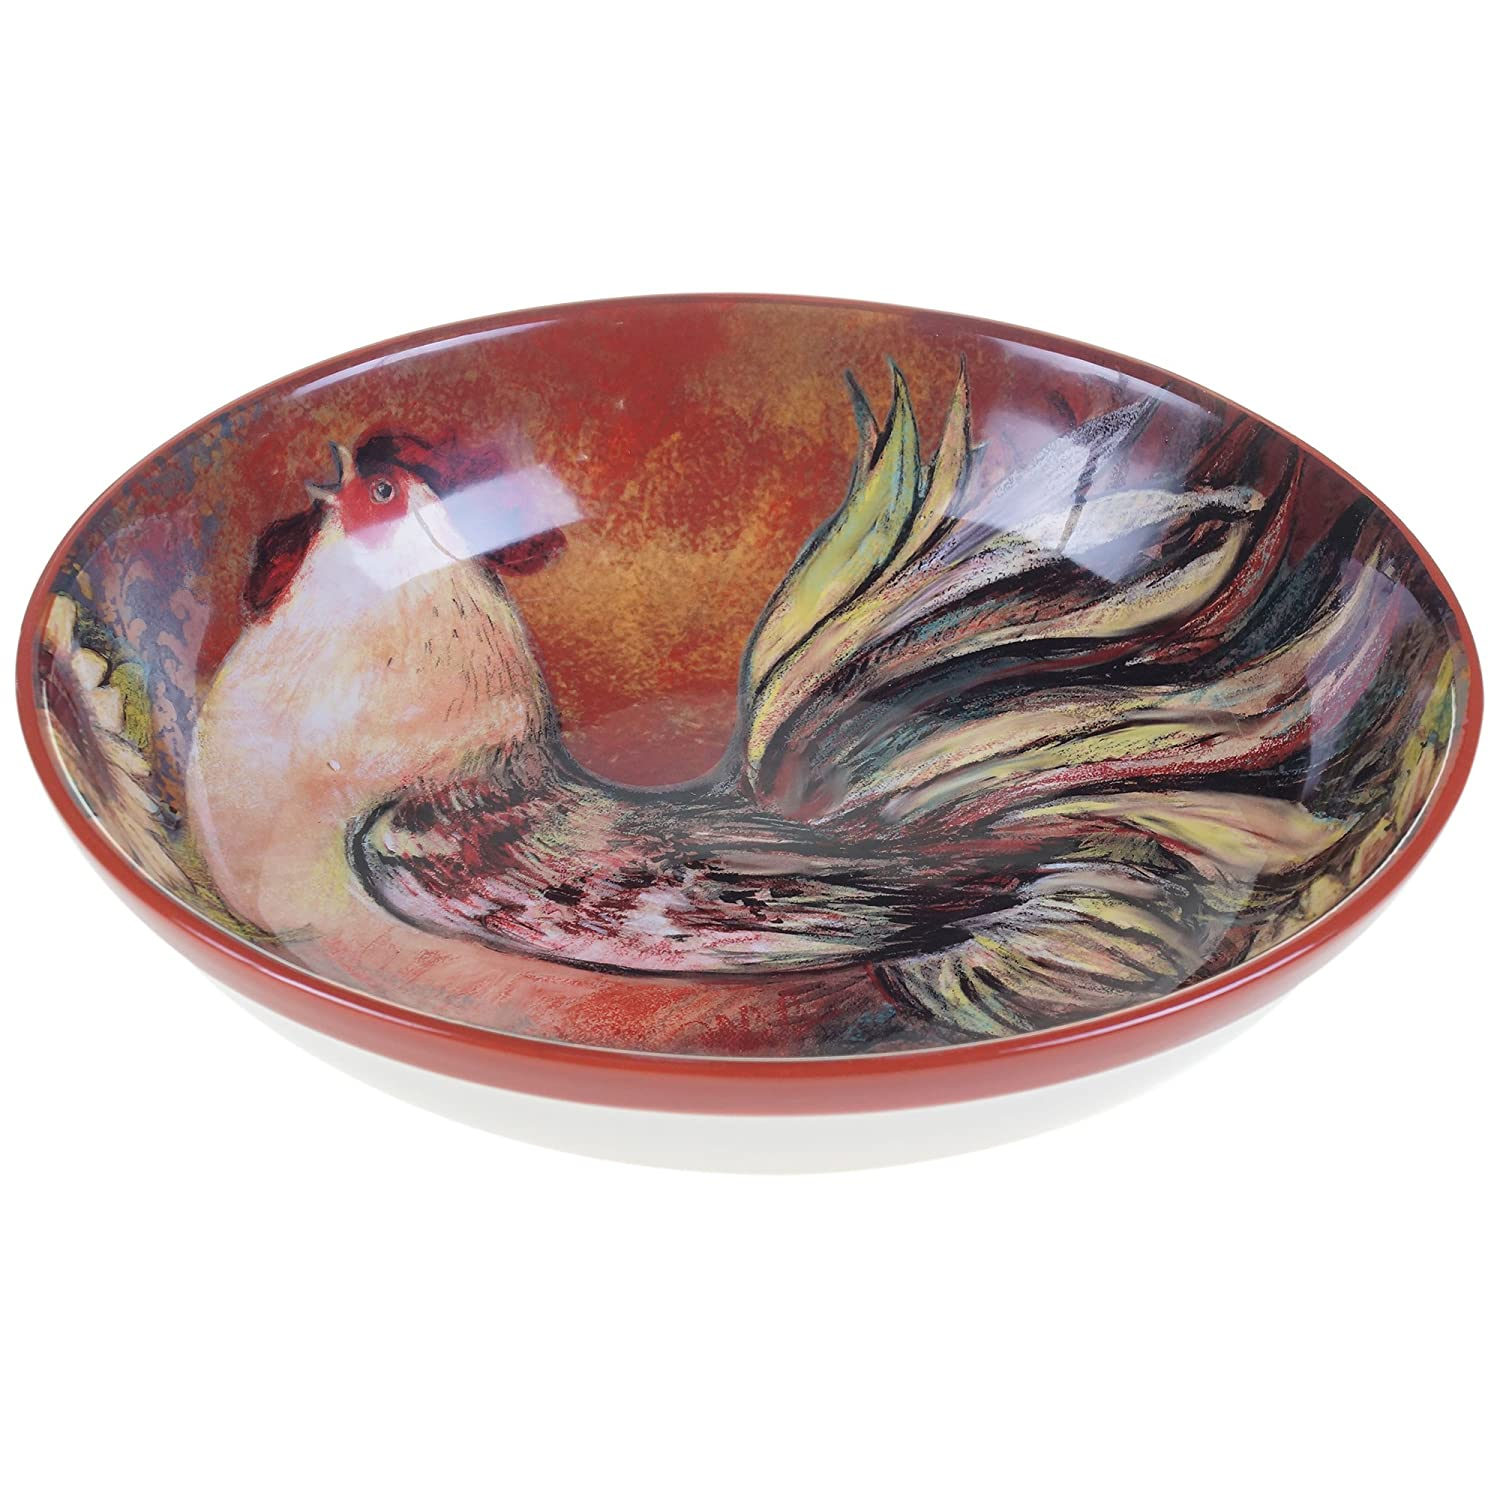 Certified International 17717 Sunflower Rooster Serving/Pasta Bowl, 13-Inchx3-Inch, Multicolor